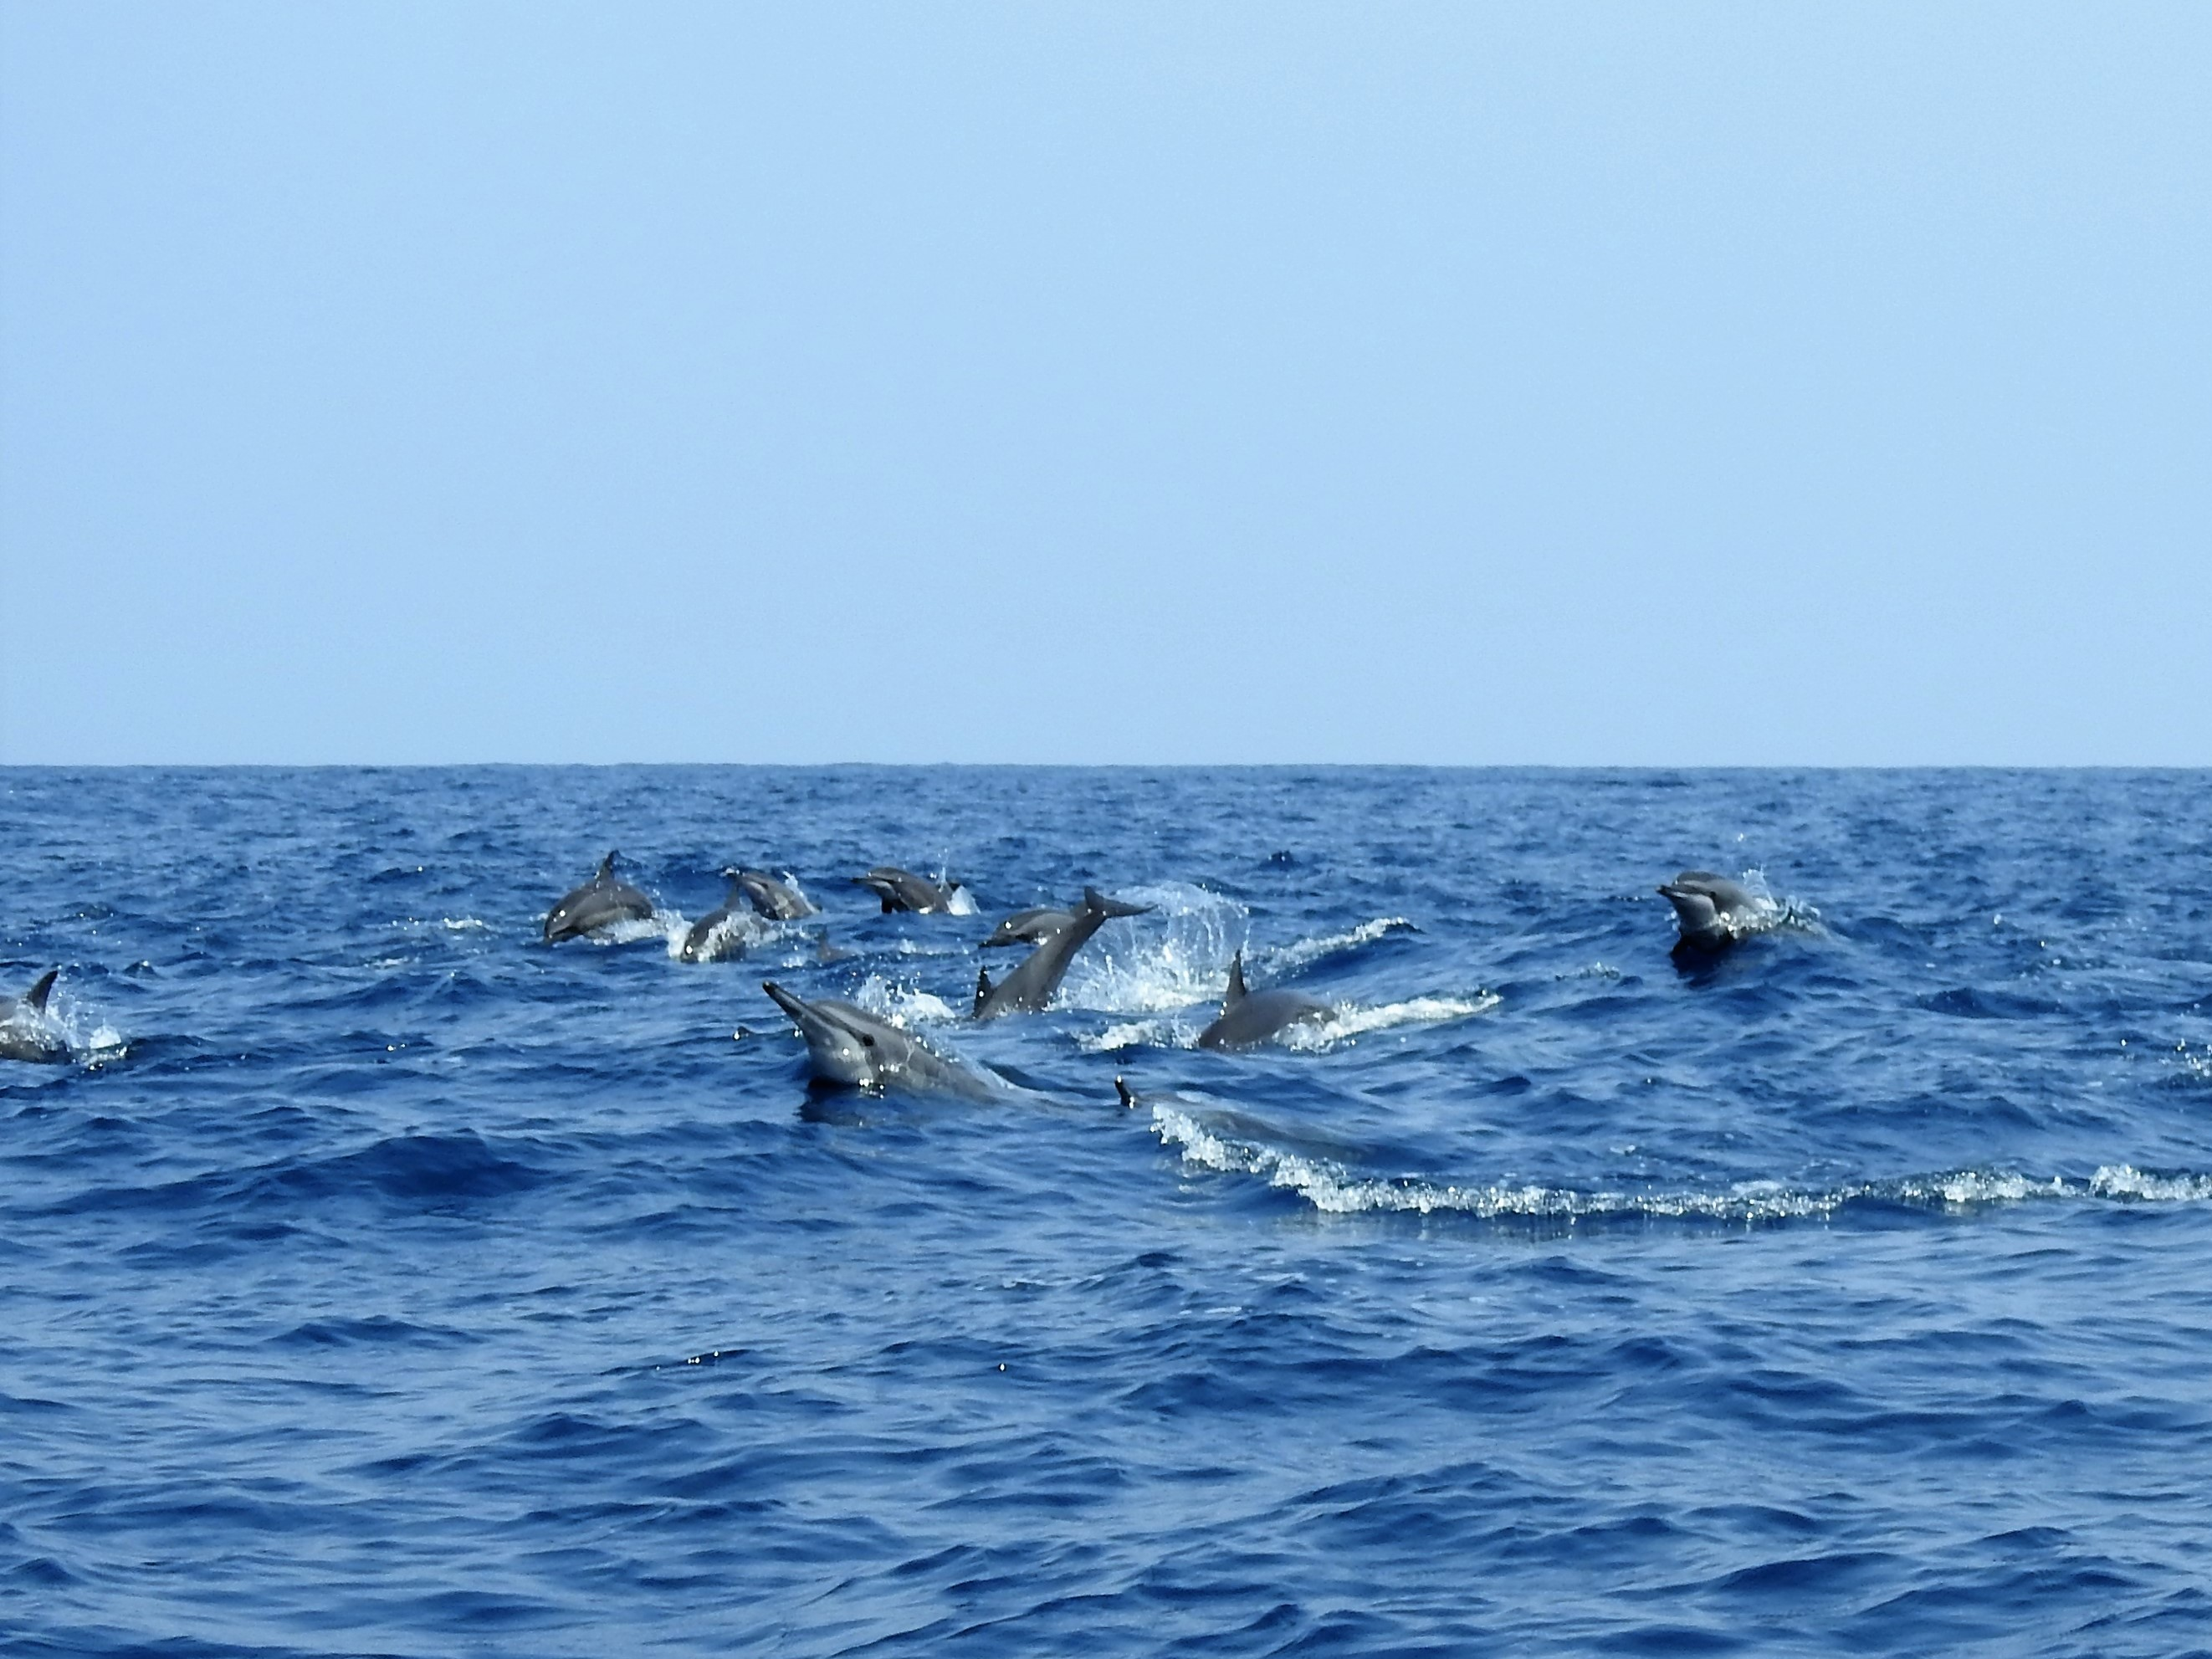 Be amazed by the number of dolphins